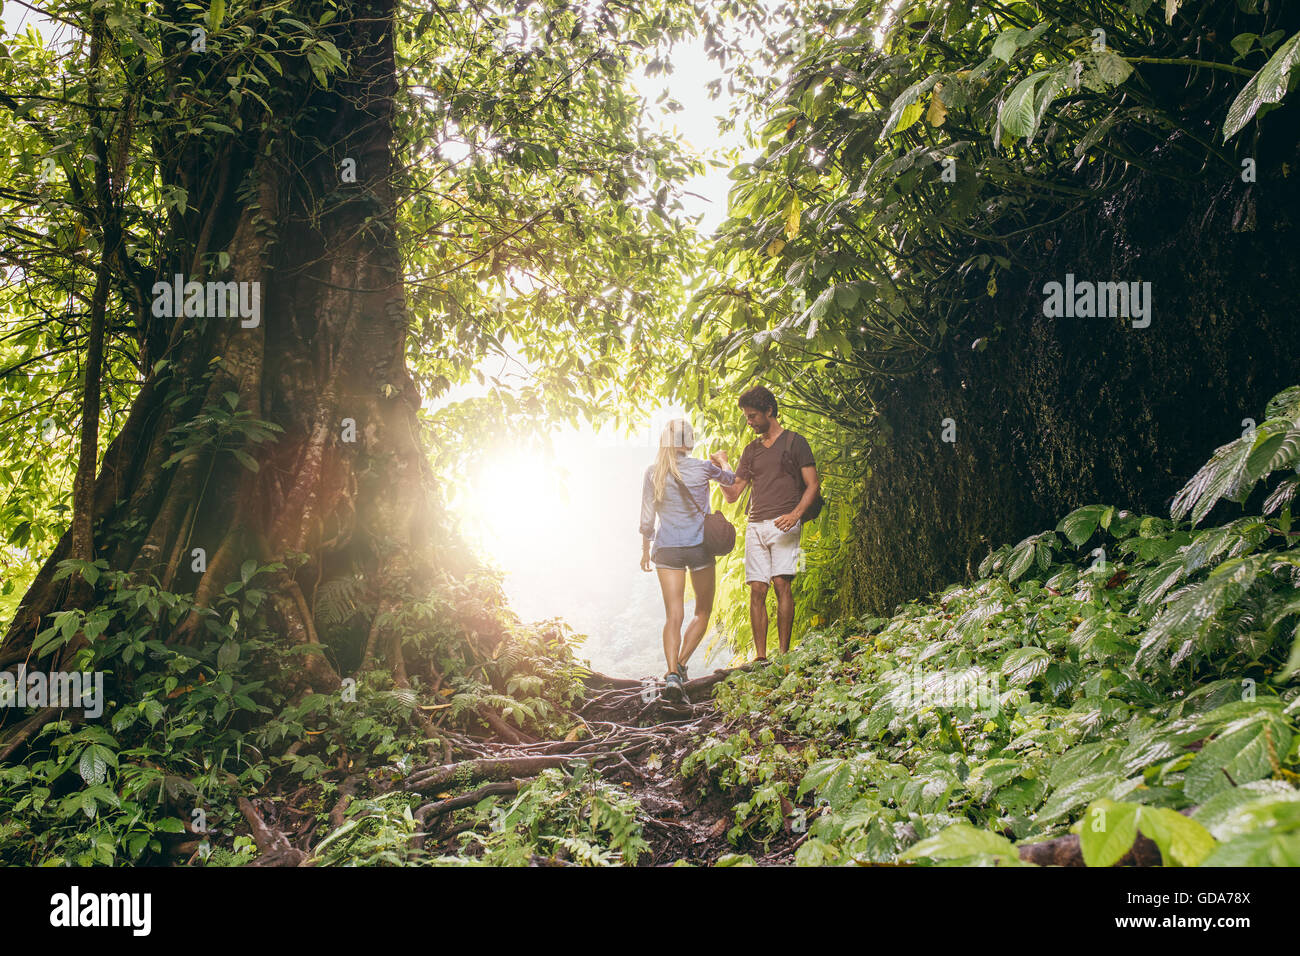 Young man and woman hiking in tropical jungle. Couple of hikers walking along forest trail. Stock Photo